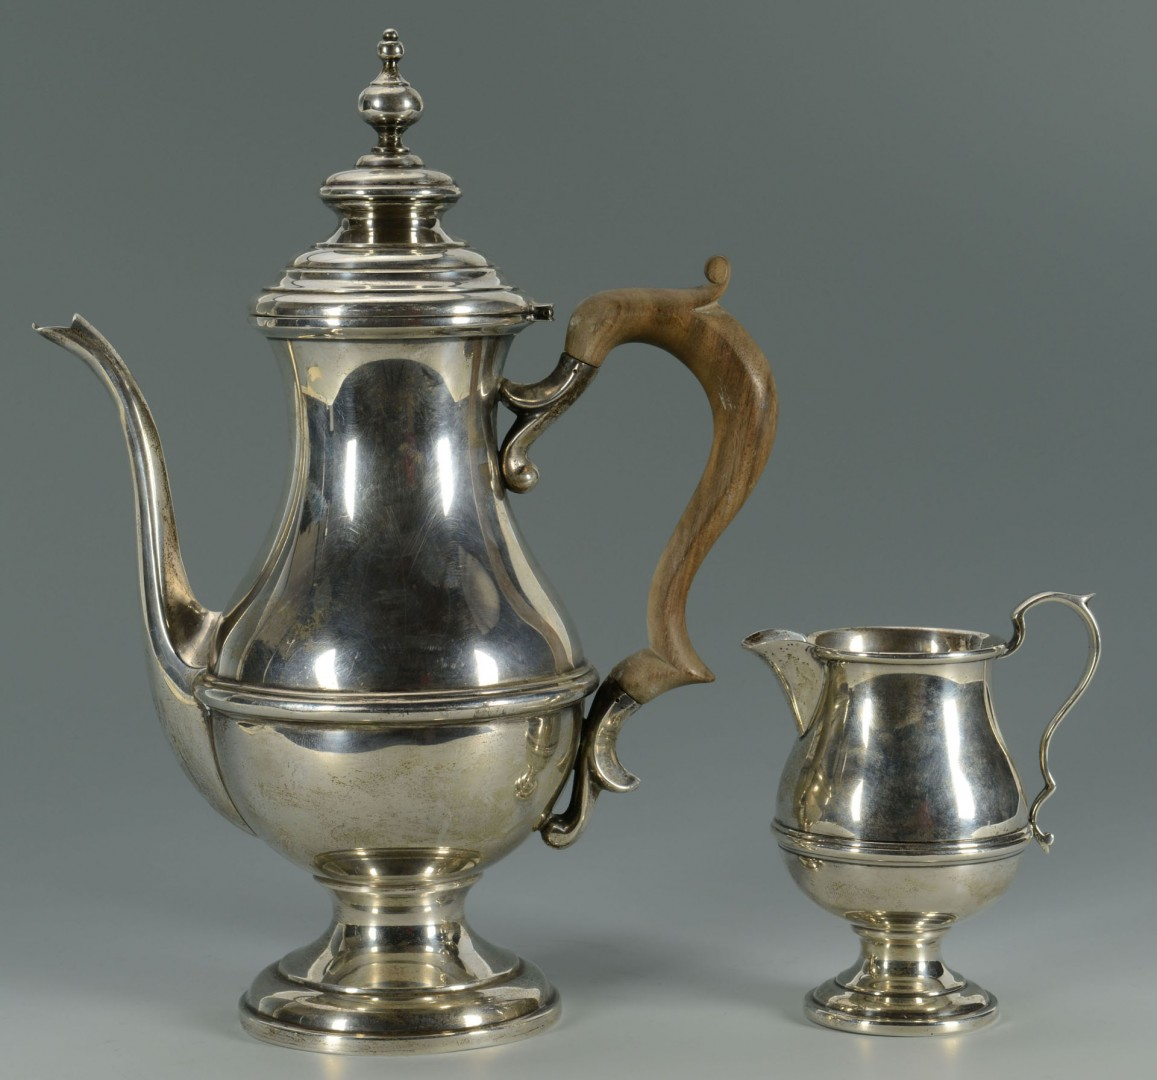 Lot 298: Sterling silver teapot and creamer, George III Sty